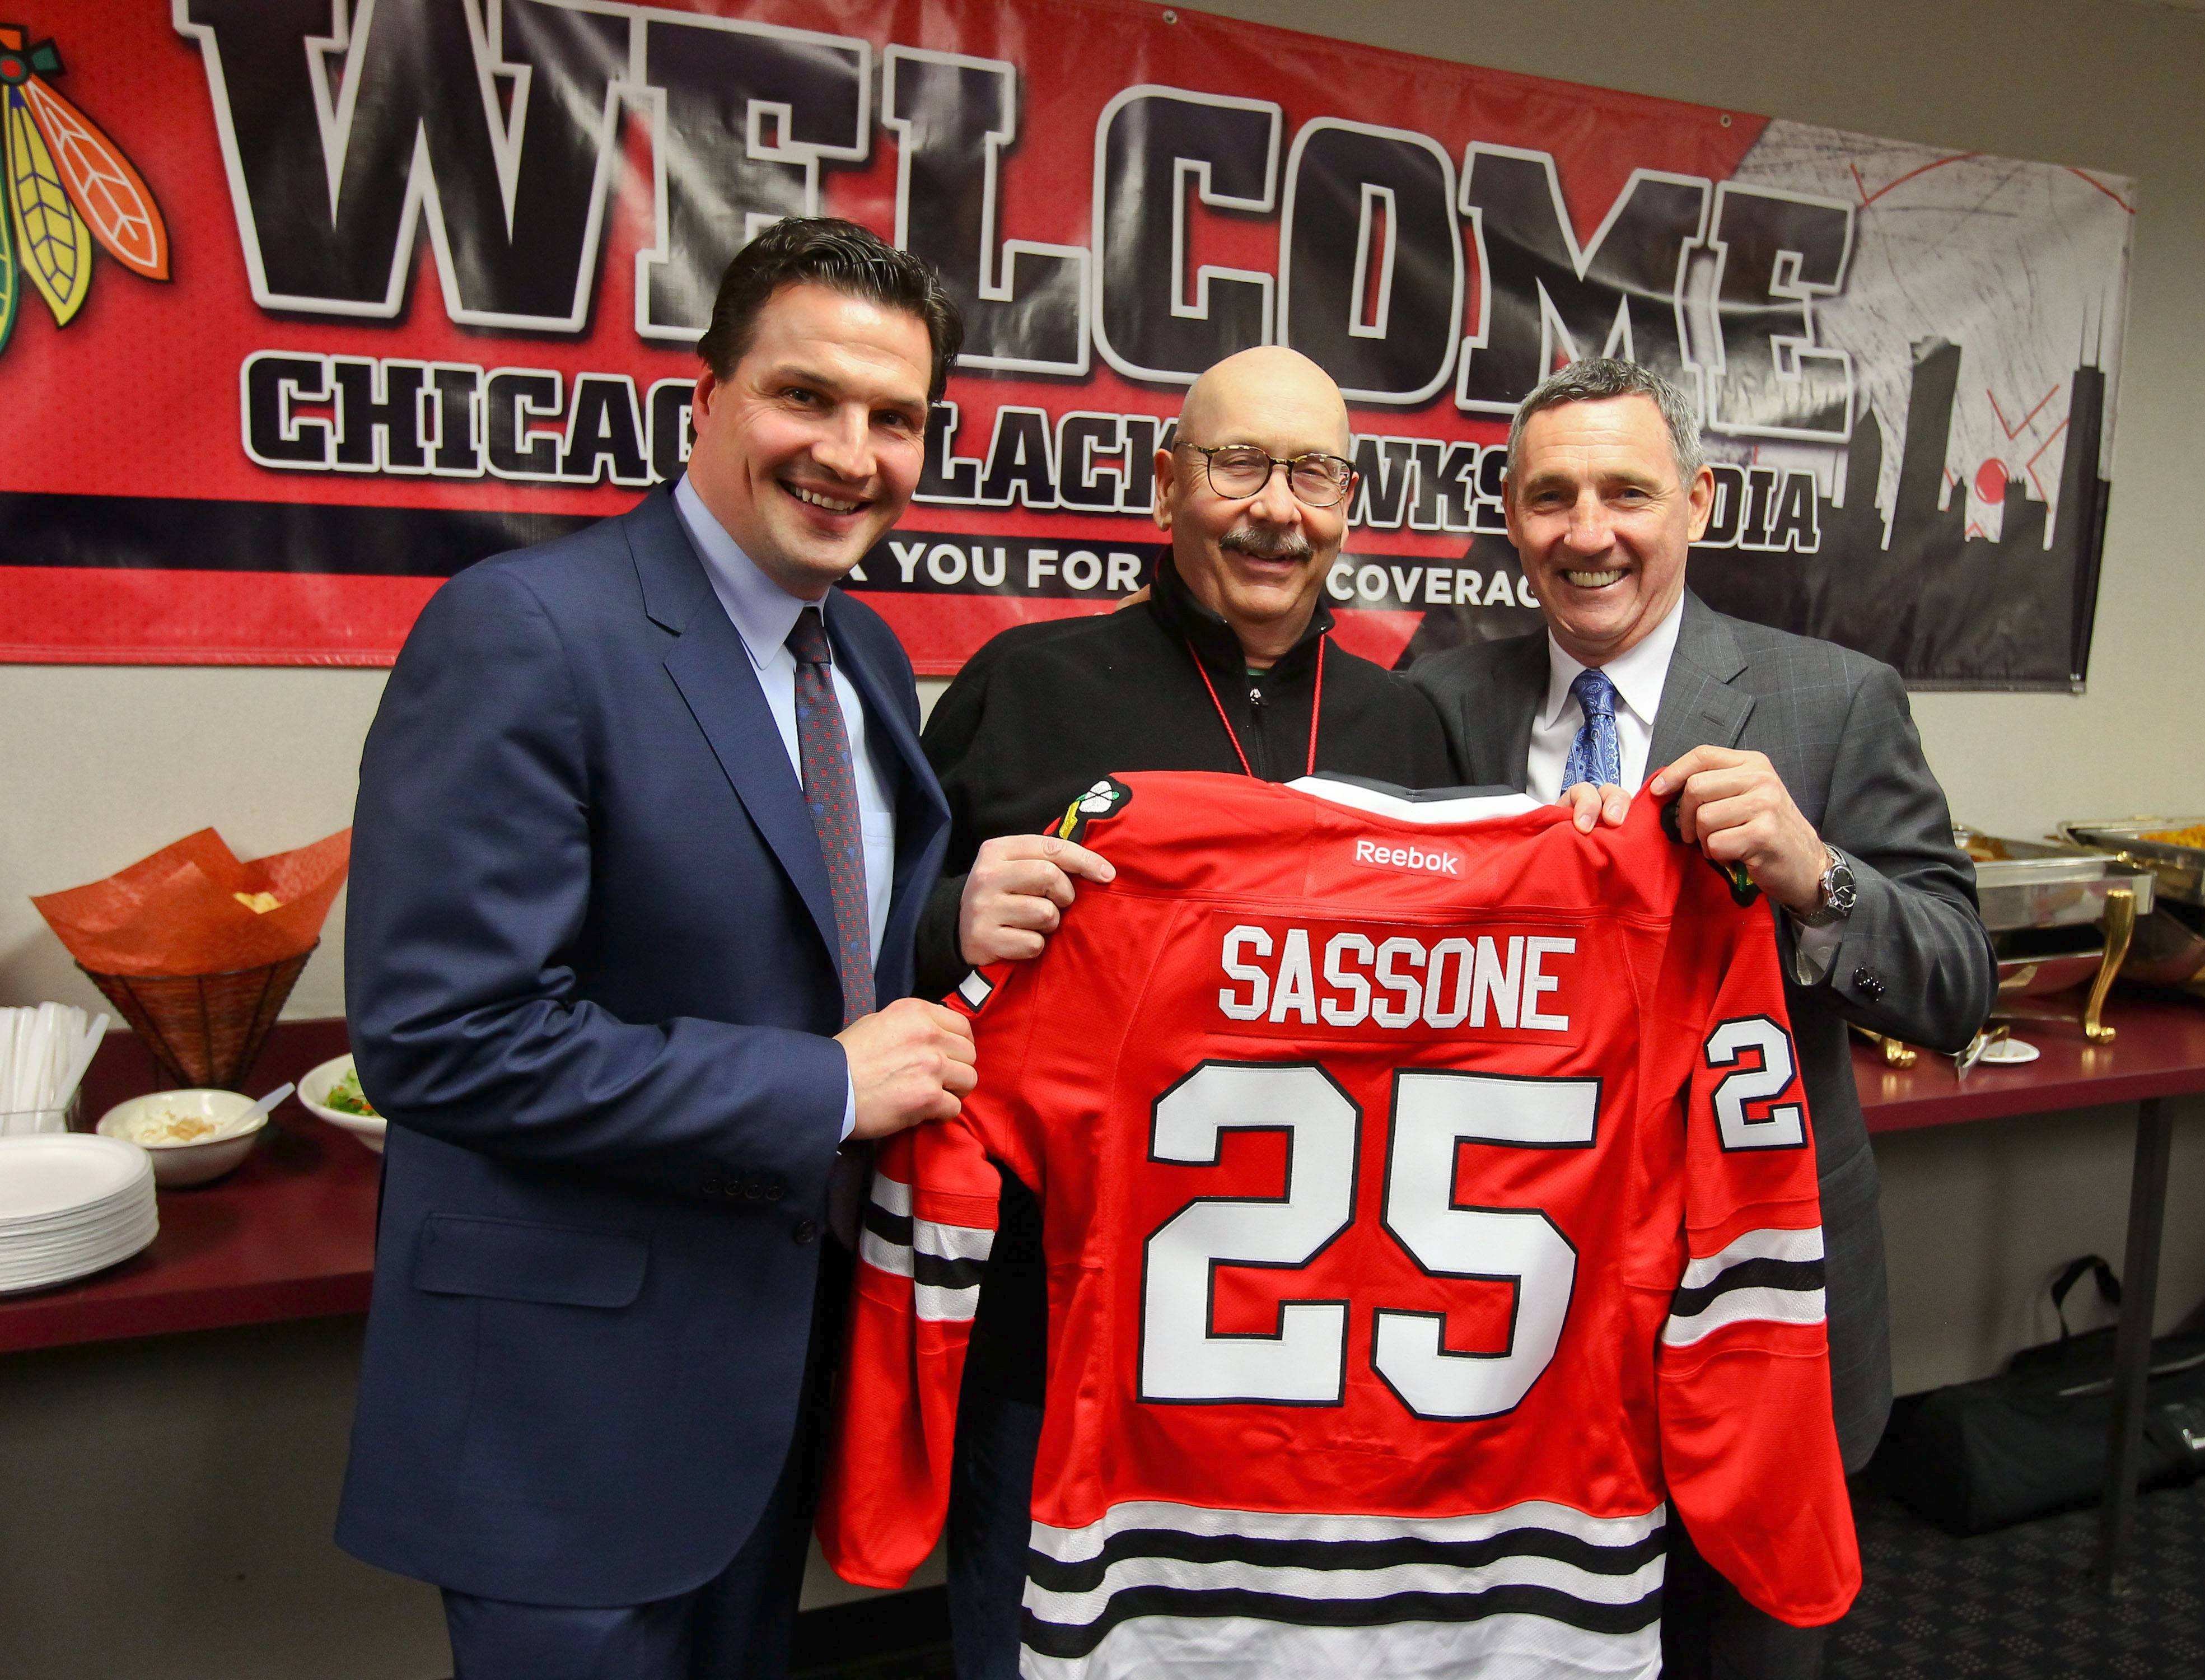 Blackhawks pay tribute to Tim Sassone